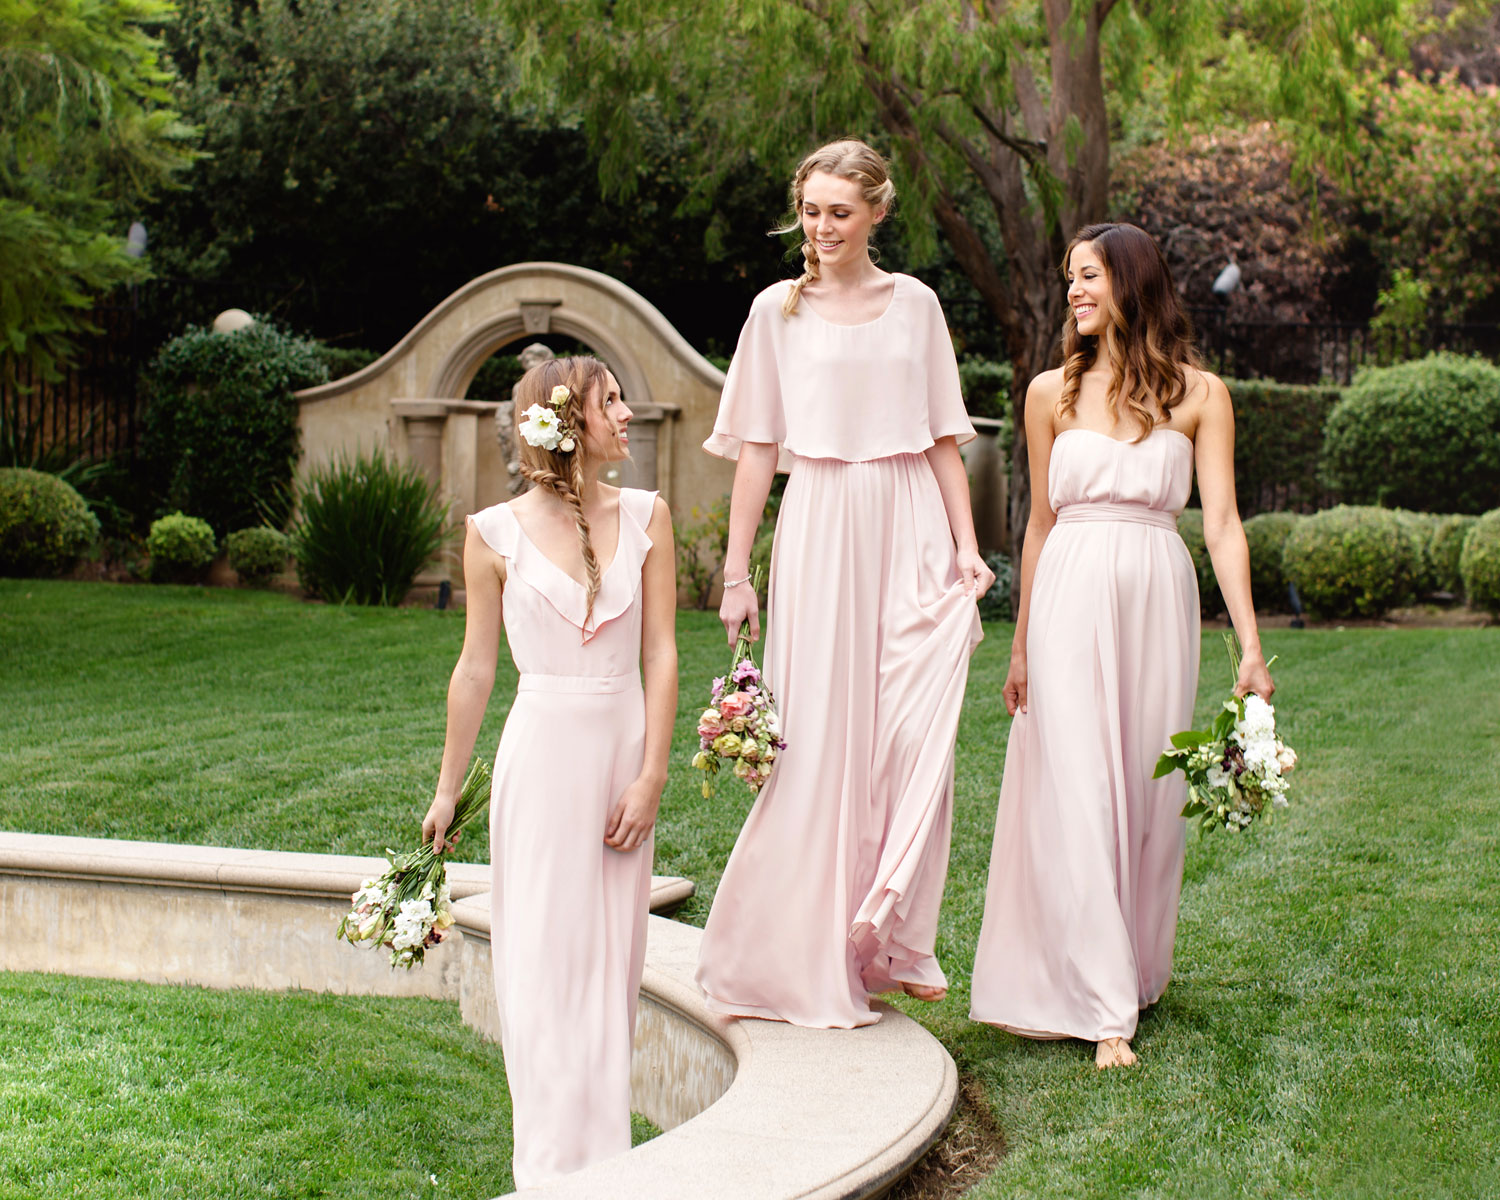 Exclusive: Bridesmaid Dress Rental Company Vow To Be Chic